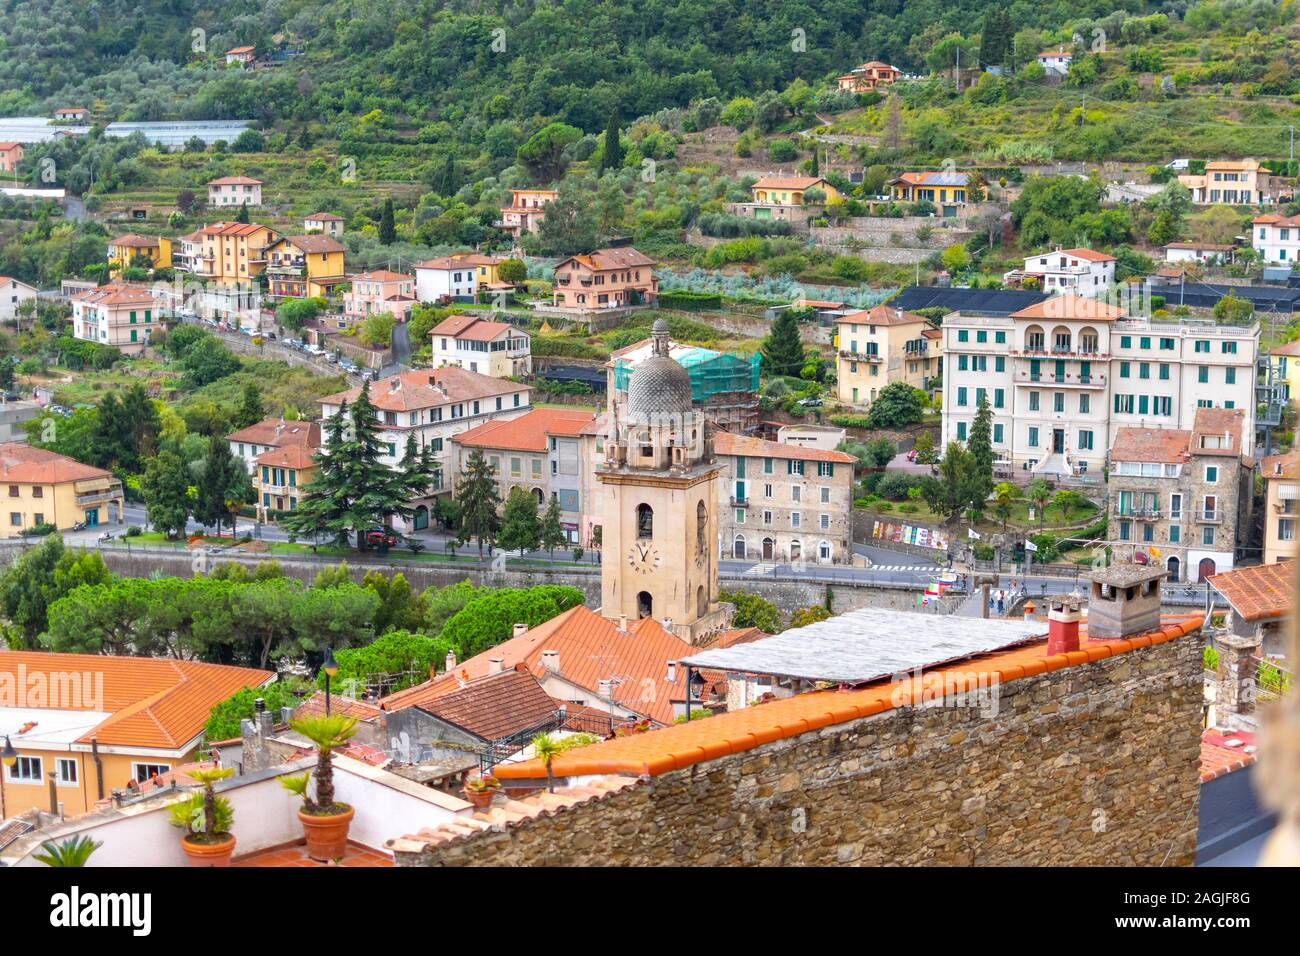 View of the Medieval Church of Saint Anthony clock tower and city of Dolceacqua, Italy, from the ancient hilltop castle. Stock Photo